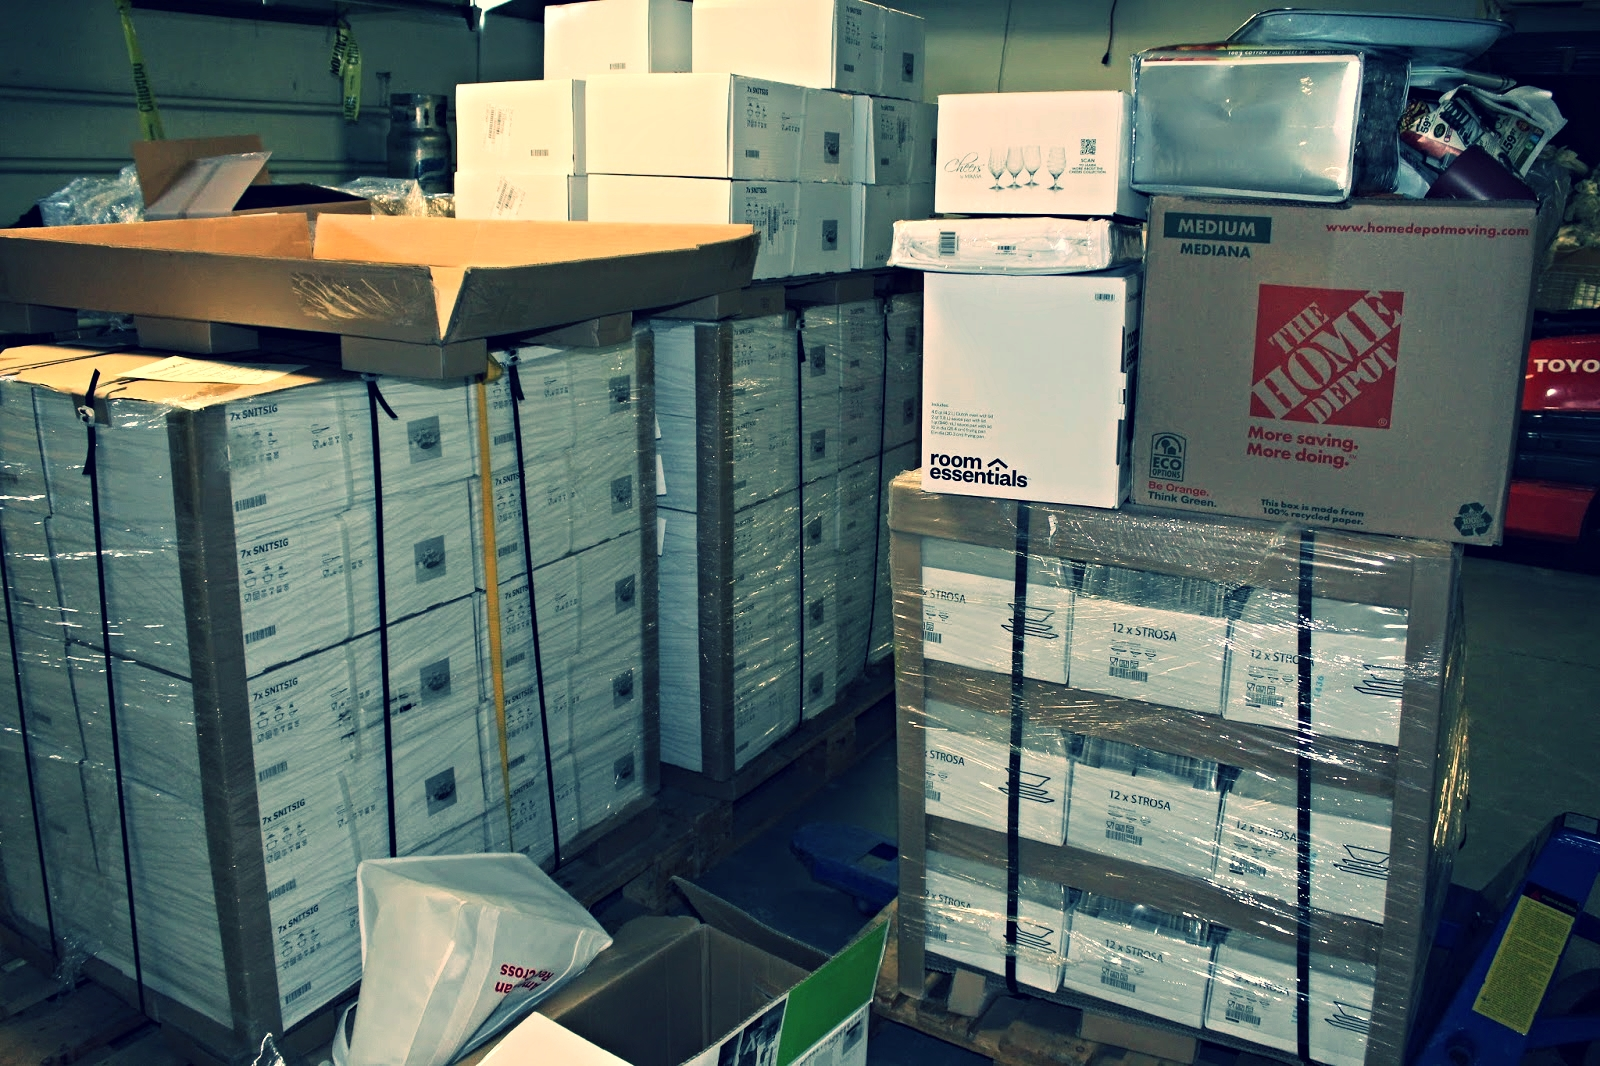 Enough supplies for 124 refugee welcome kits stacked and ready at the Red Cross.Supplies include pots, pans, silverware, dishes, cooking utensils, mattresses and blankets.